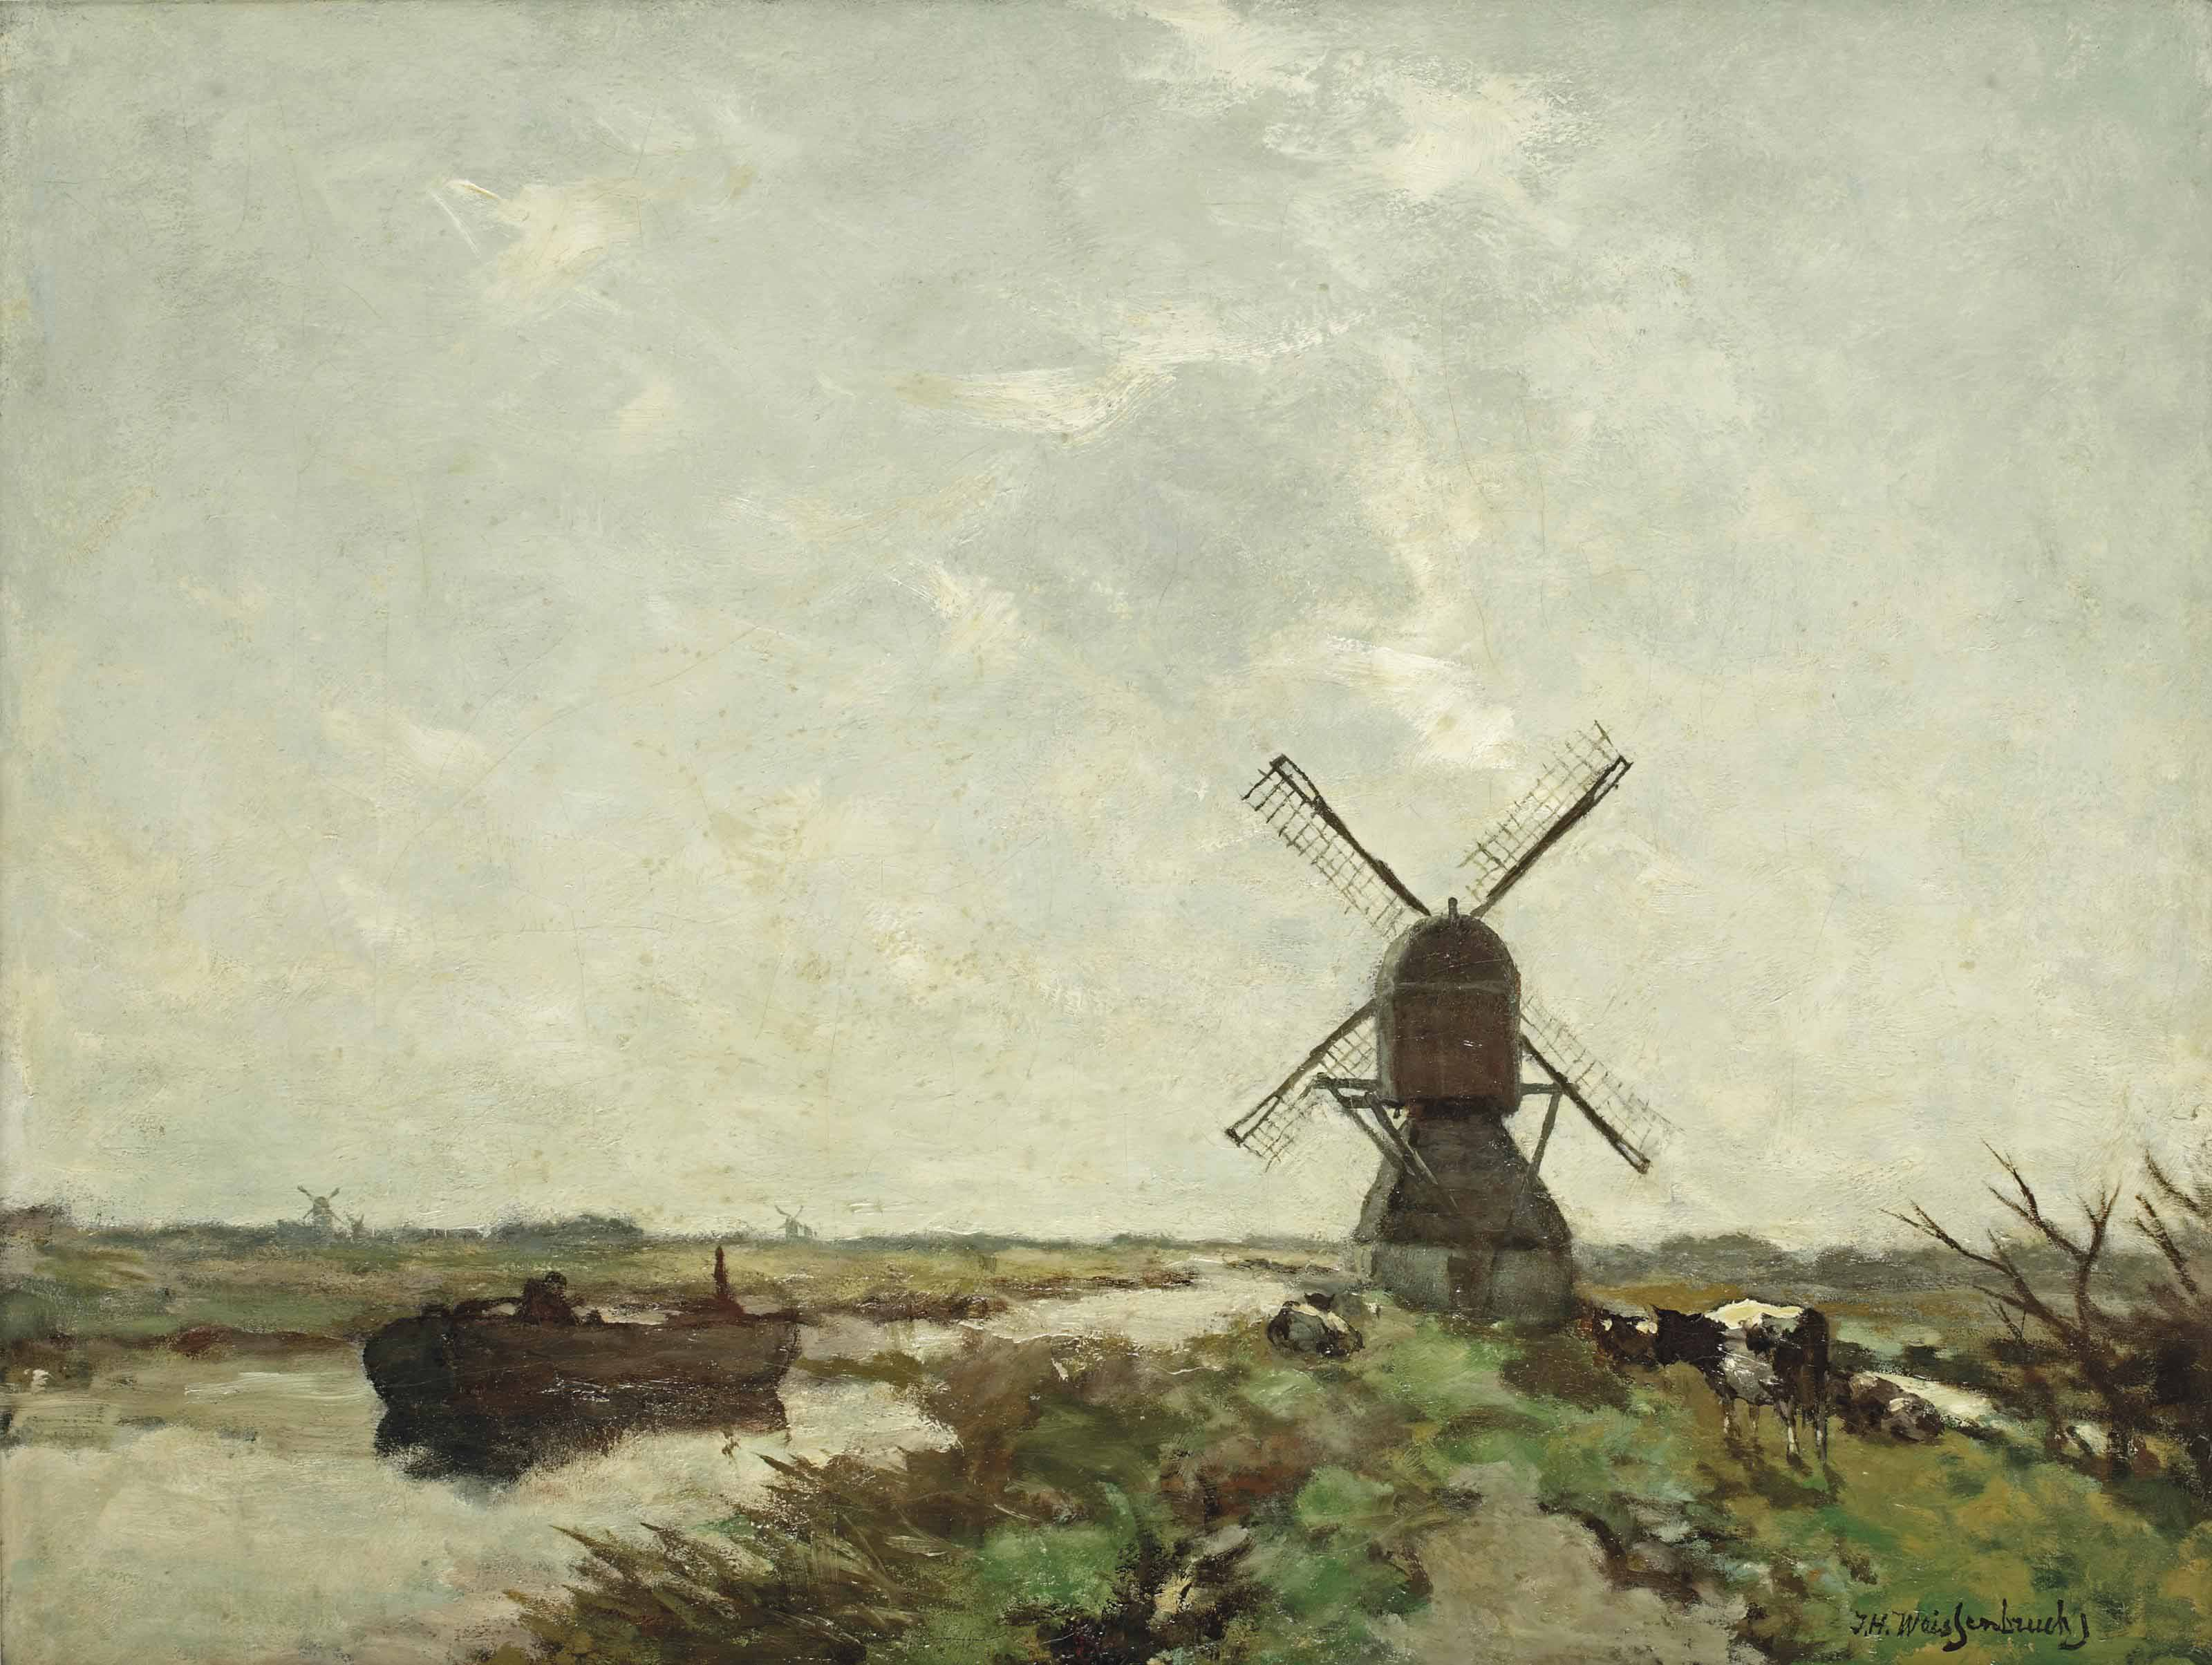 Polder landscape with a windmill and cows